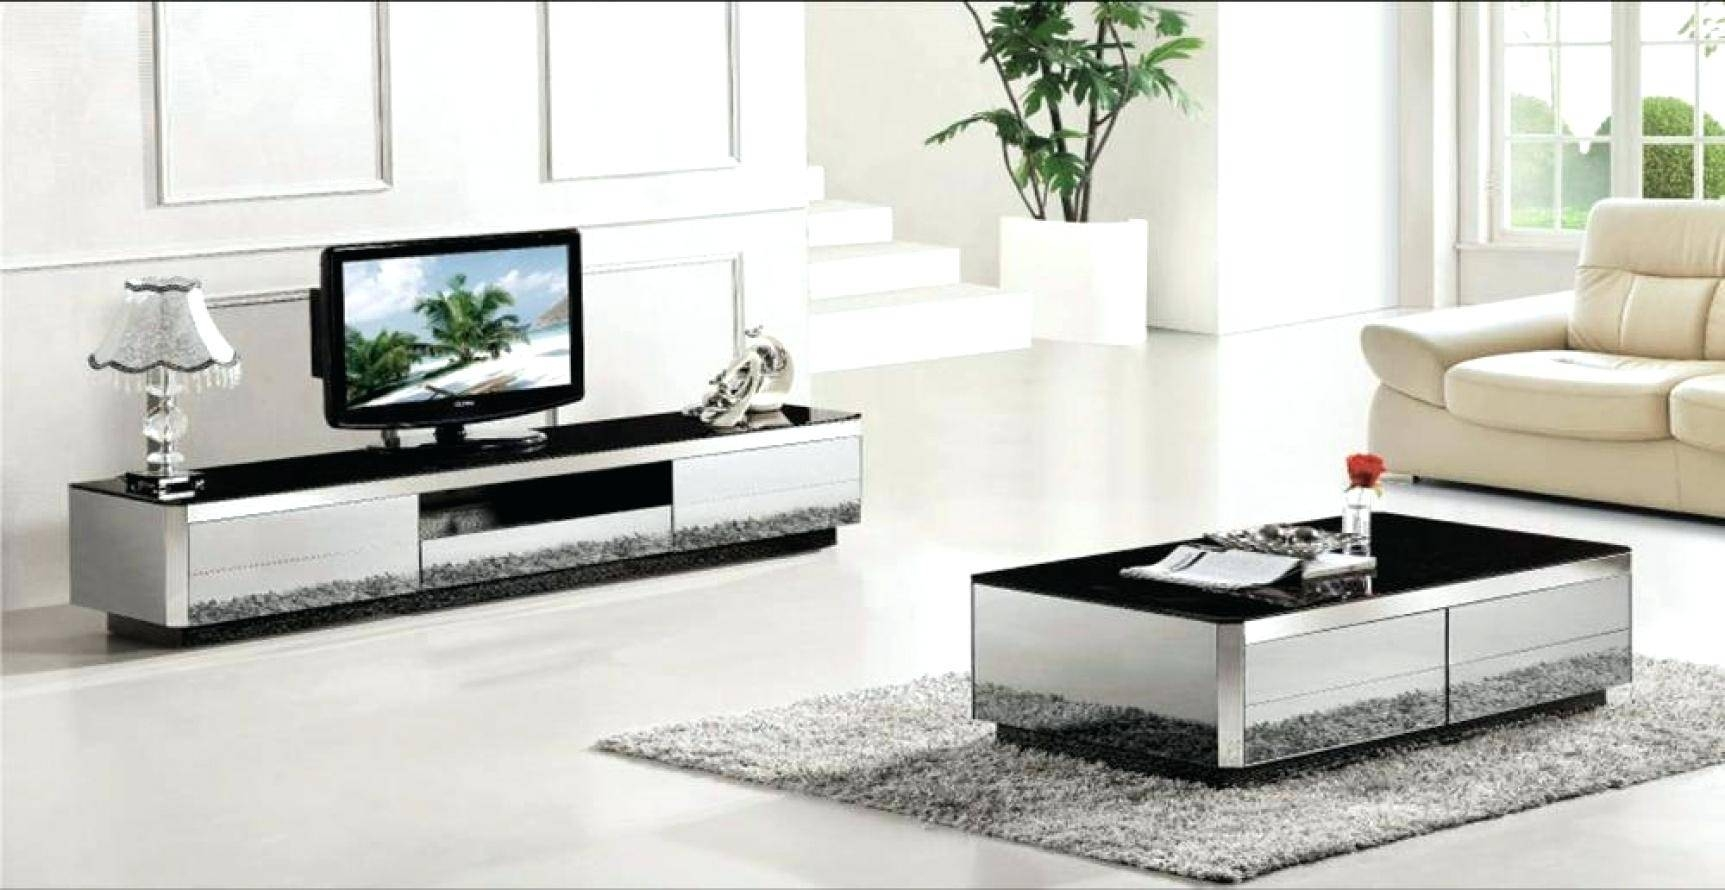 Matching White Coffee Table And Tv Stand | Coffee Tables Decoration within Coffee Tables And Tv Stands (Image 15 of 30)